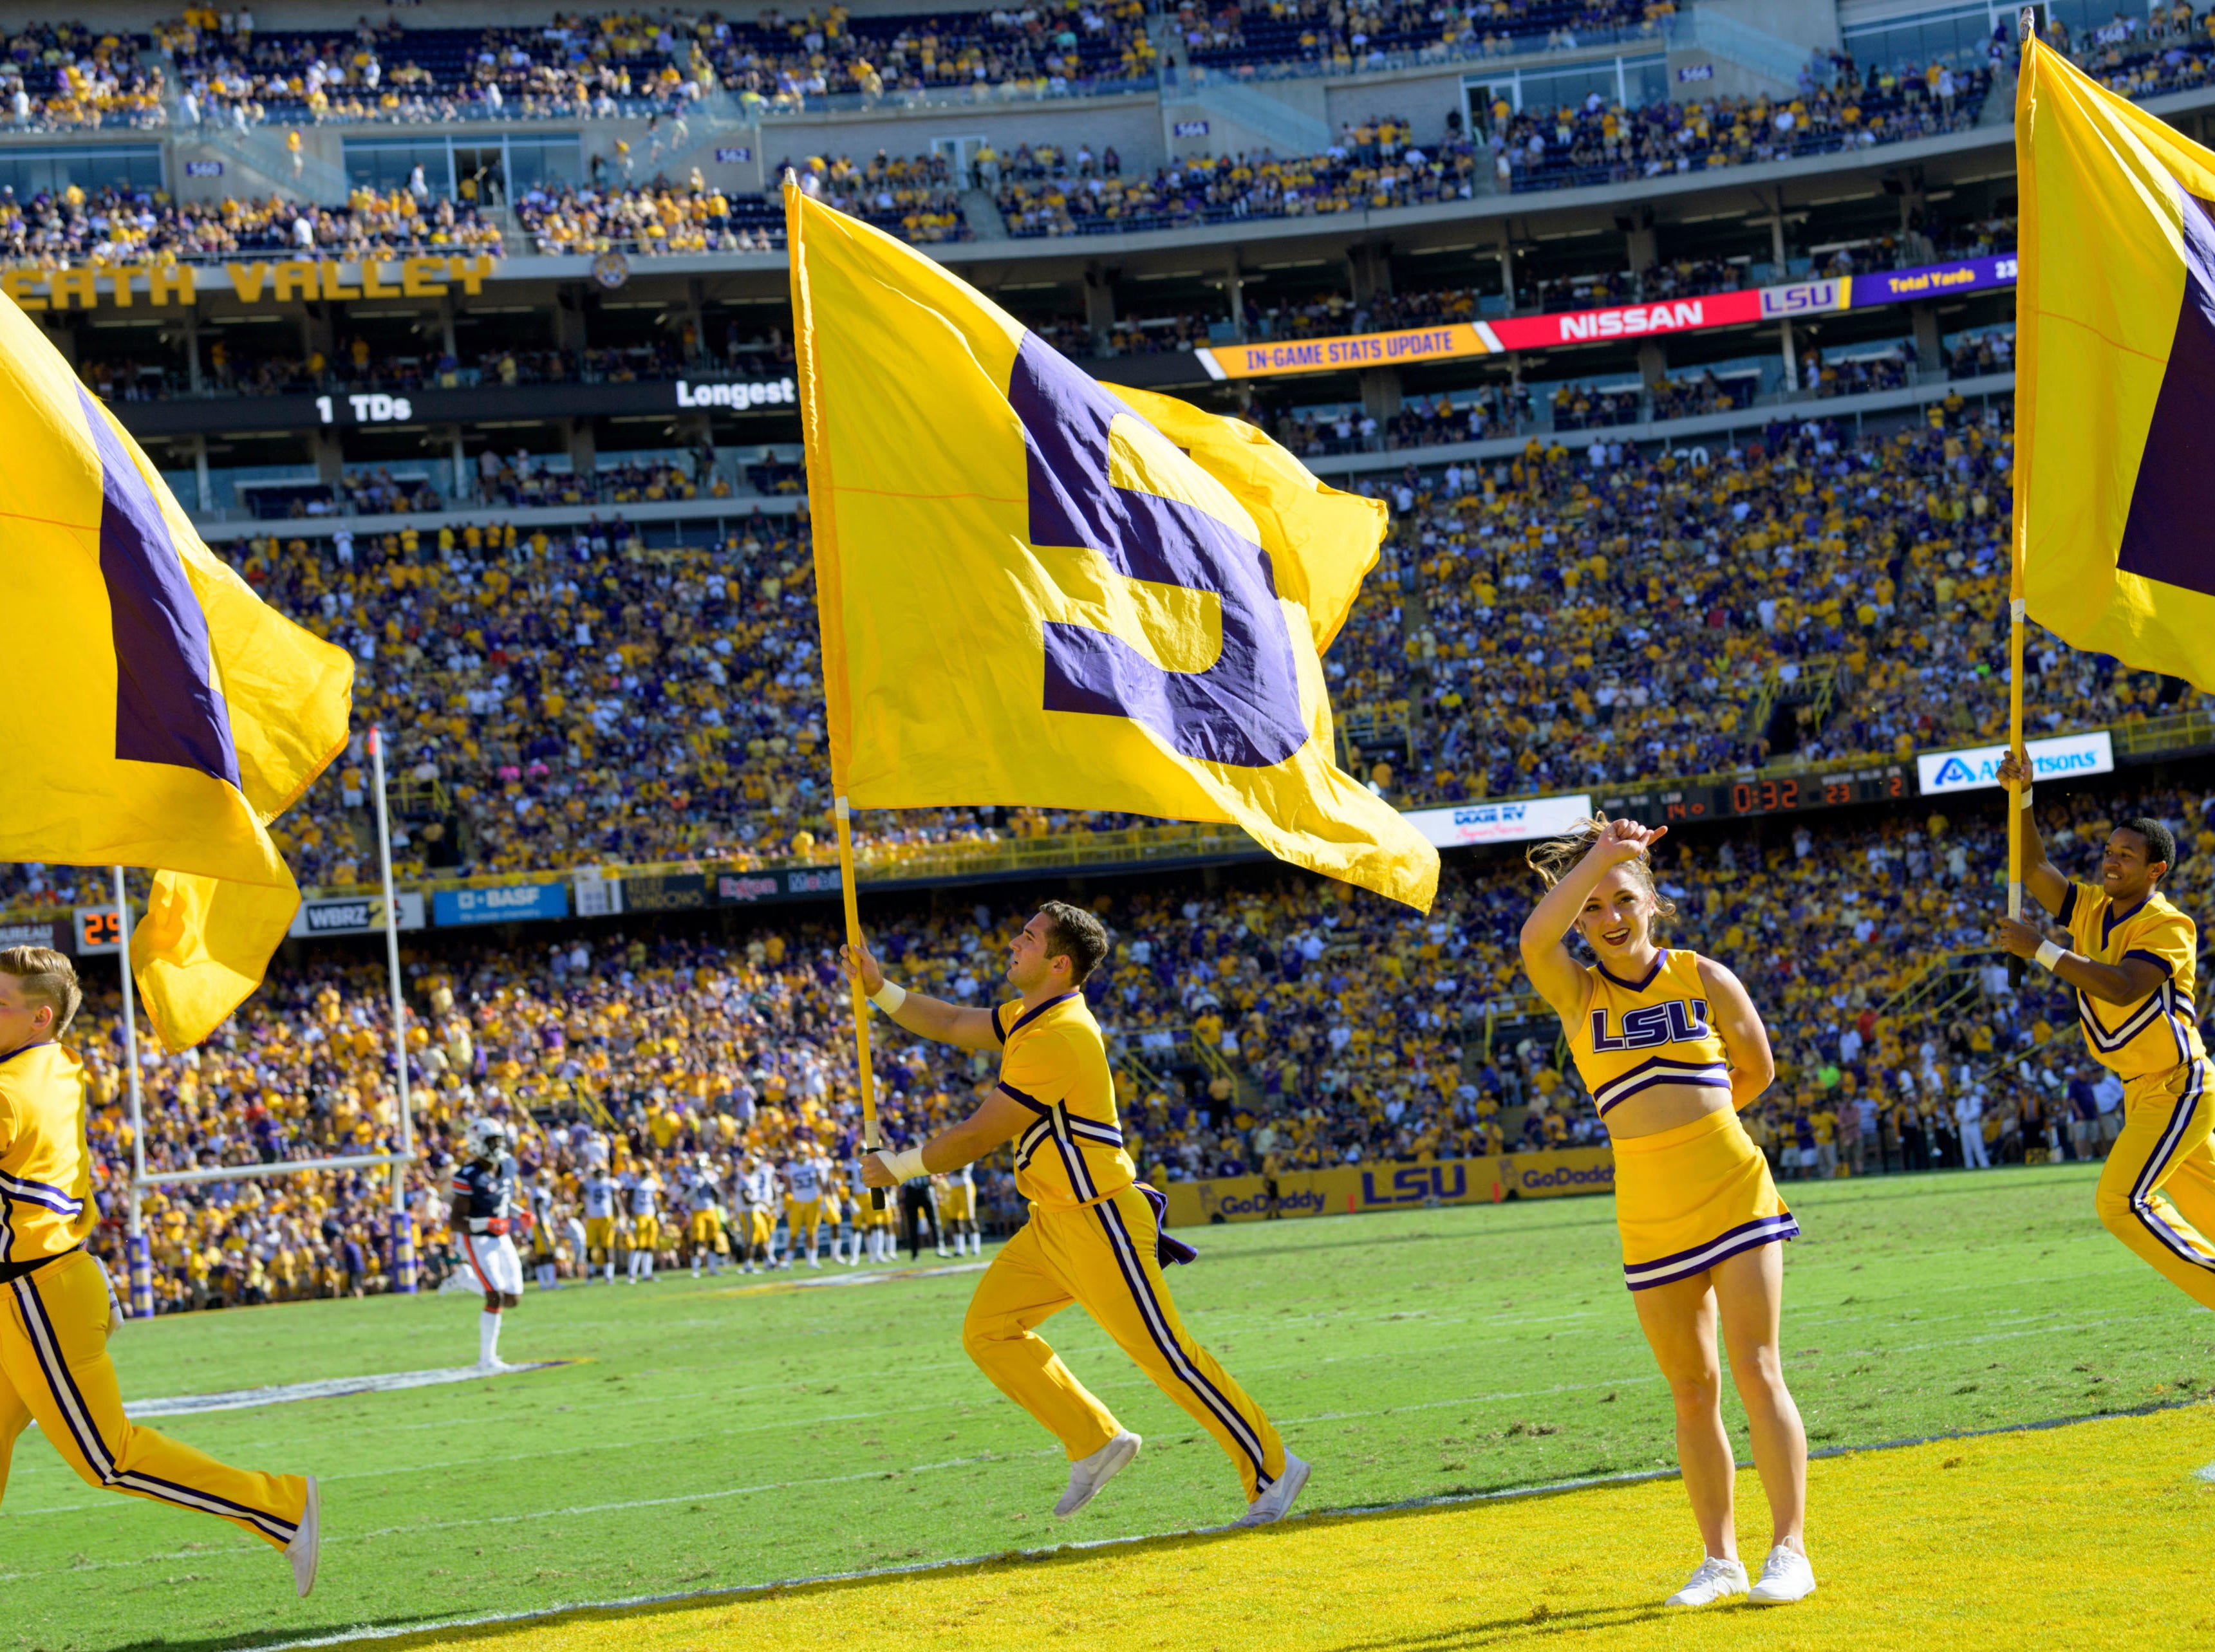 LSU cheerleaders celebrate a touchdown during an NCAA college football game against Auburn in Baton Rouge, La., Saturday, Oct. 14, 2017. (AP Photo/Matthew Hinton)